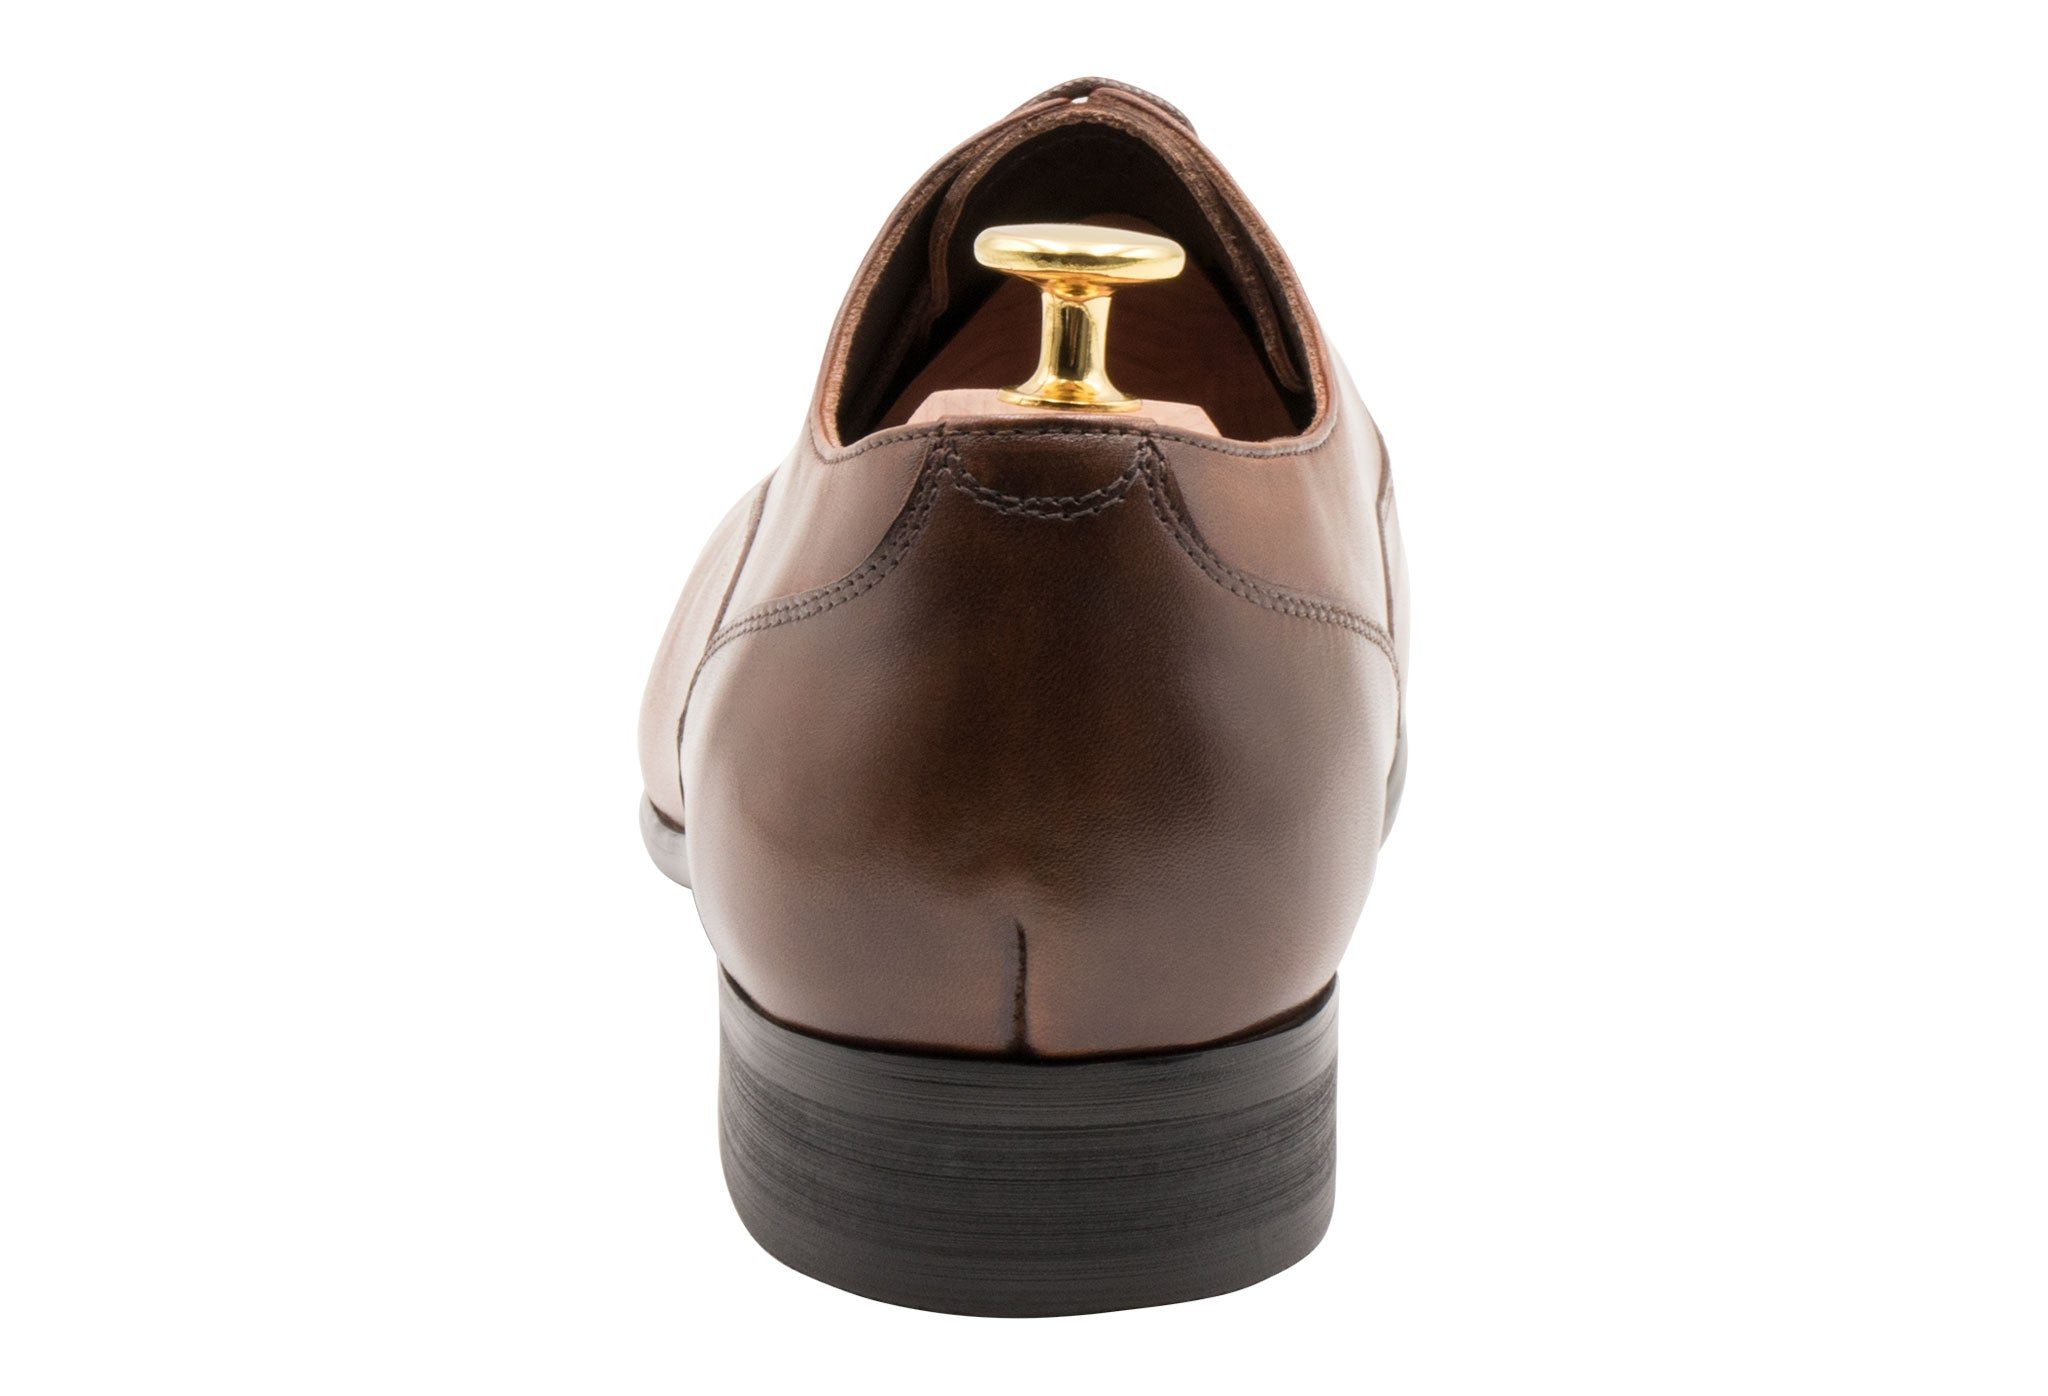 Calafate Blake Stitch Chestnut Oxford